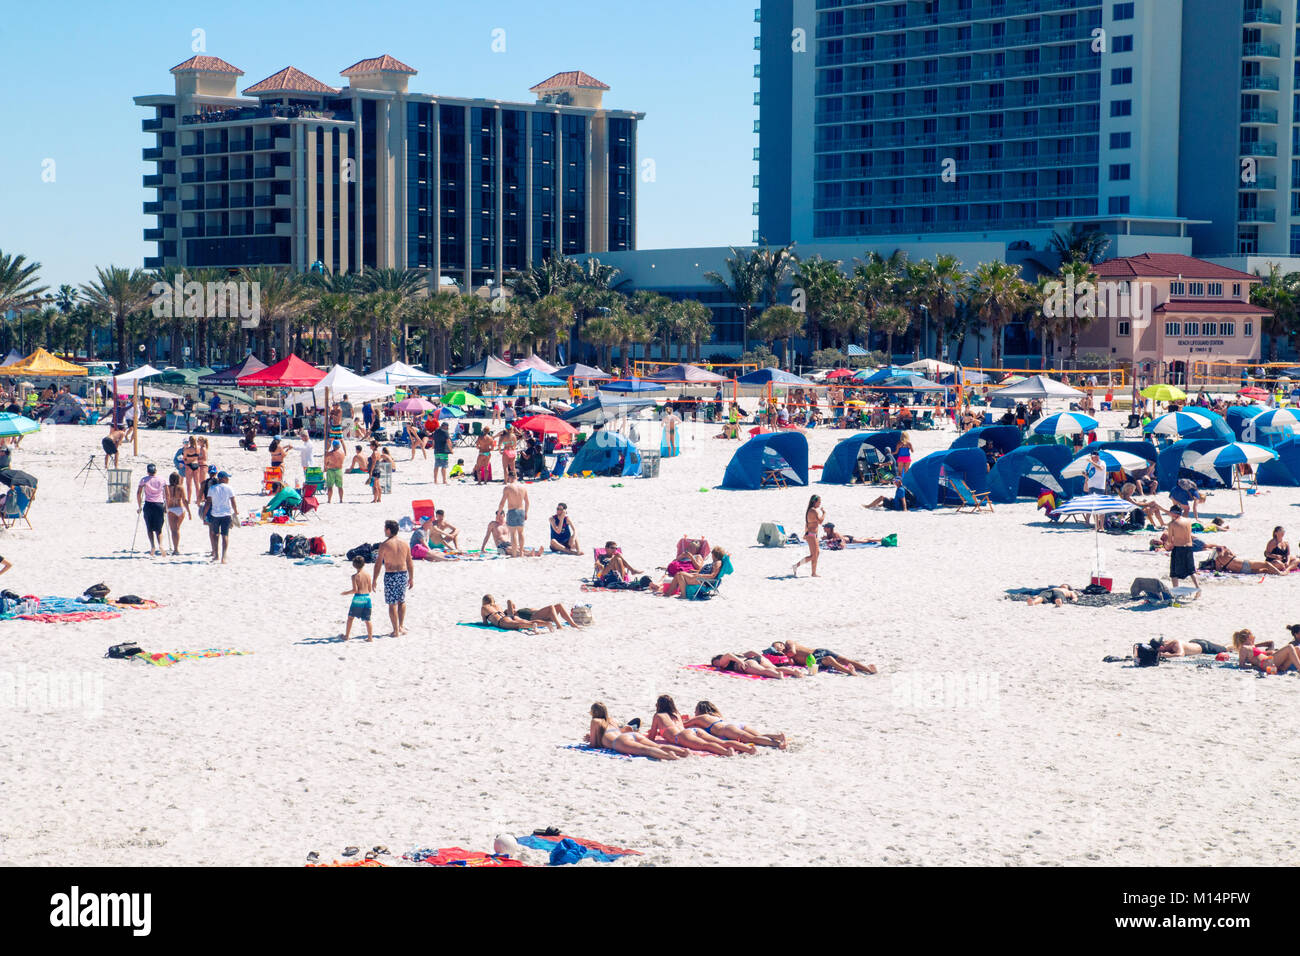 Beach holiday scene, tropical sandy beach Clearwater beach Florida, people relaxing and having fun on the beach, Stock Photo